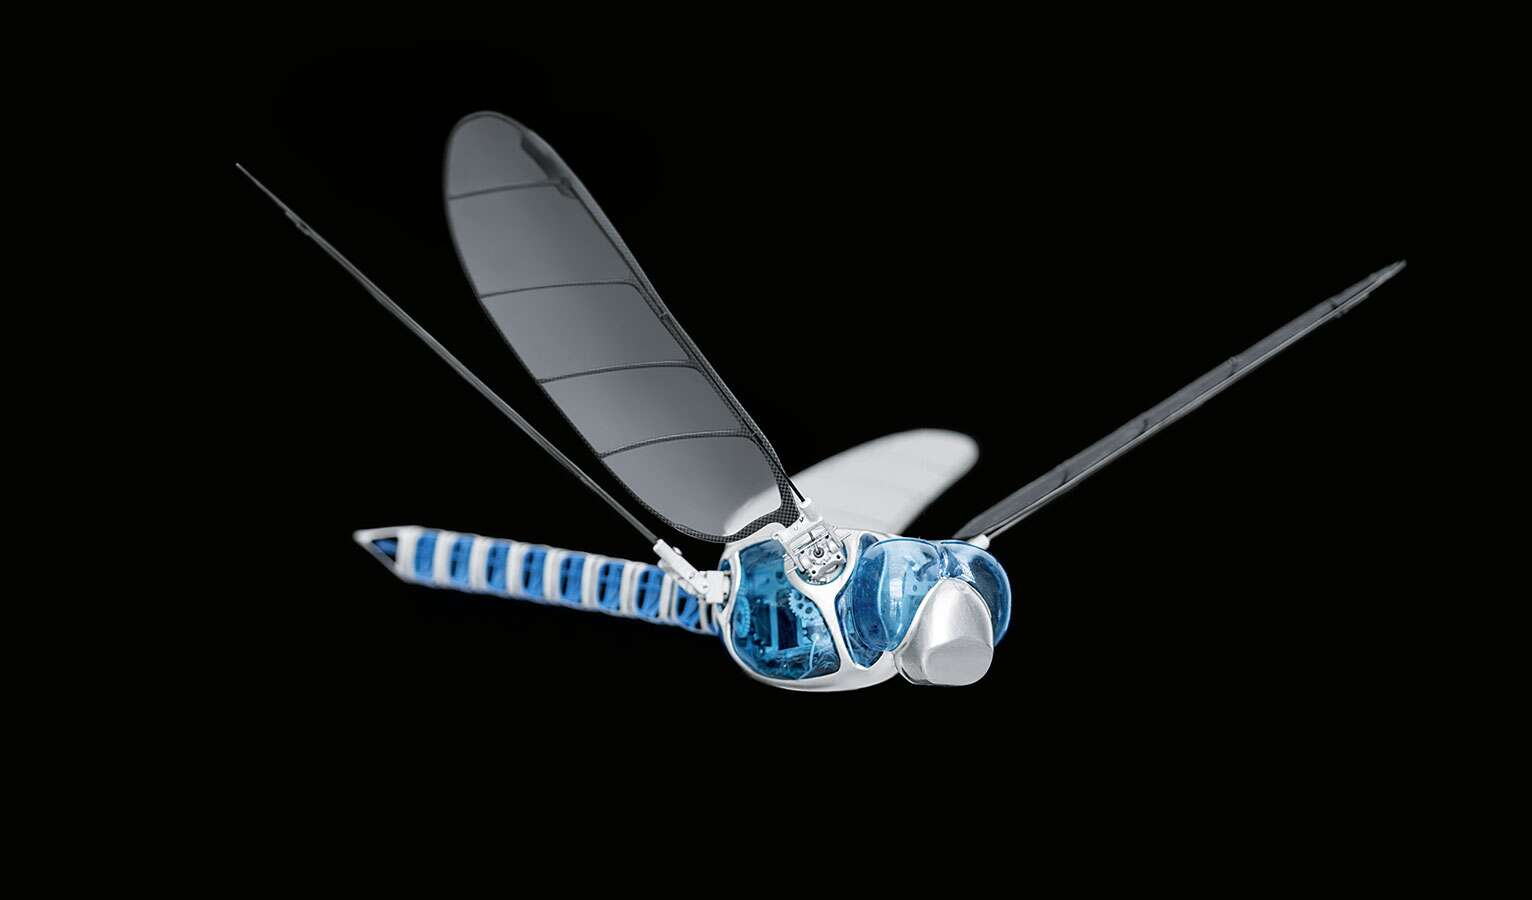 Inspired by nature: the complex wing-flapping principle of the dragonfly ...